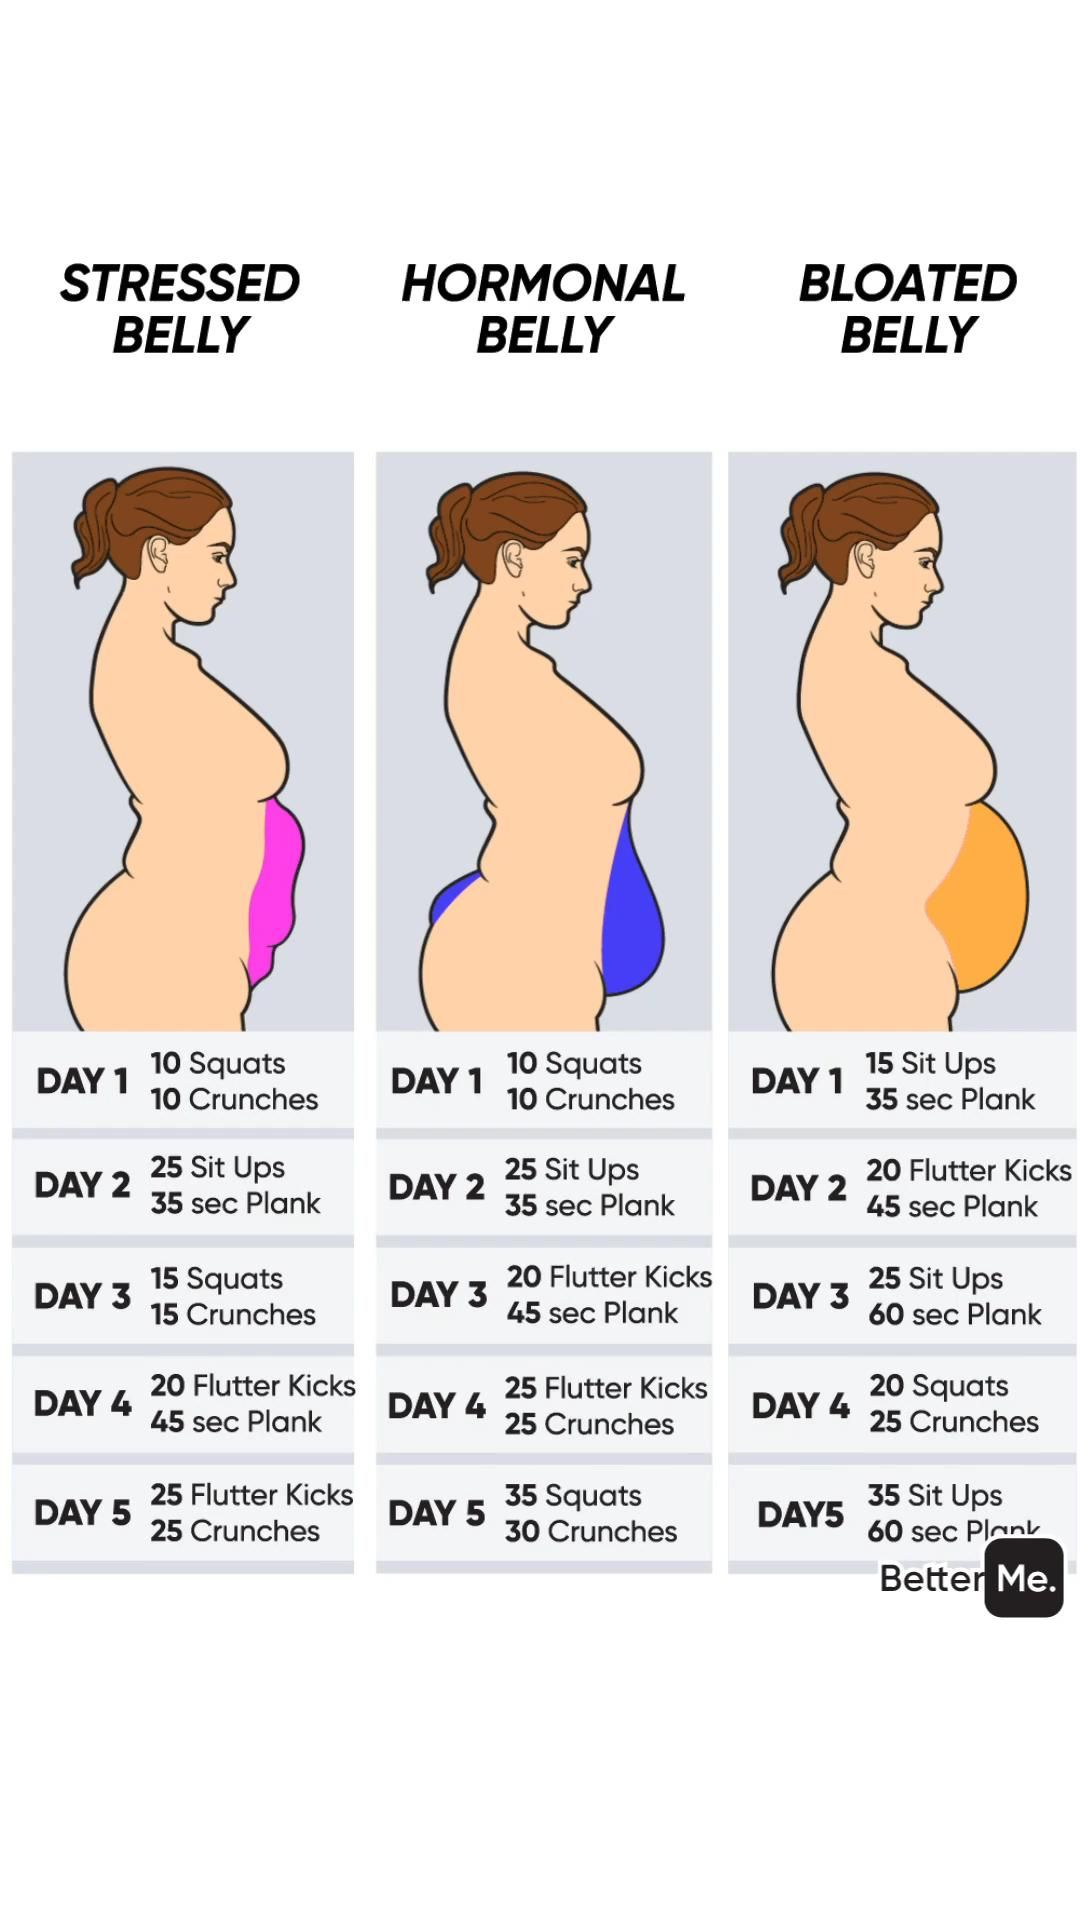 Learn how to get a slim waist fast and safely! Read information about the causes of belly fat and the ways to get rid of it in the article #weightloss #weightlossjourney #weightlossgoals #weightlossdiary #weightlossinspiration #weightlosssupport #fitness #fitnessmotivation #fitnessjourney #fitnesslifestyle #fitnesslife #fitnessgoals #fitnessfood #fitnessinspiration #fitnessbody #workout #workouts #workouttime #workoutvideo #belly #bellyworkout #belkytypes